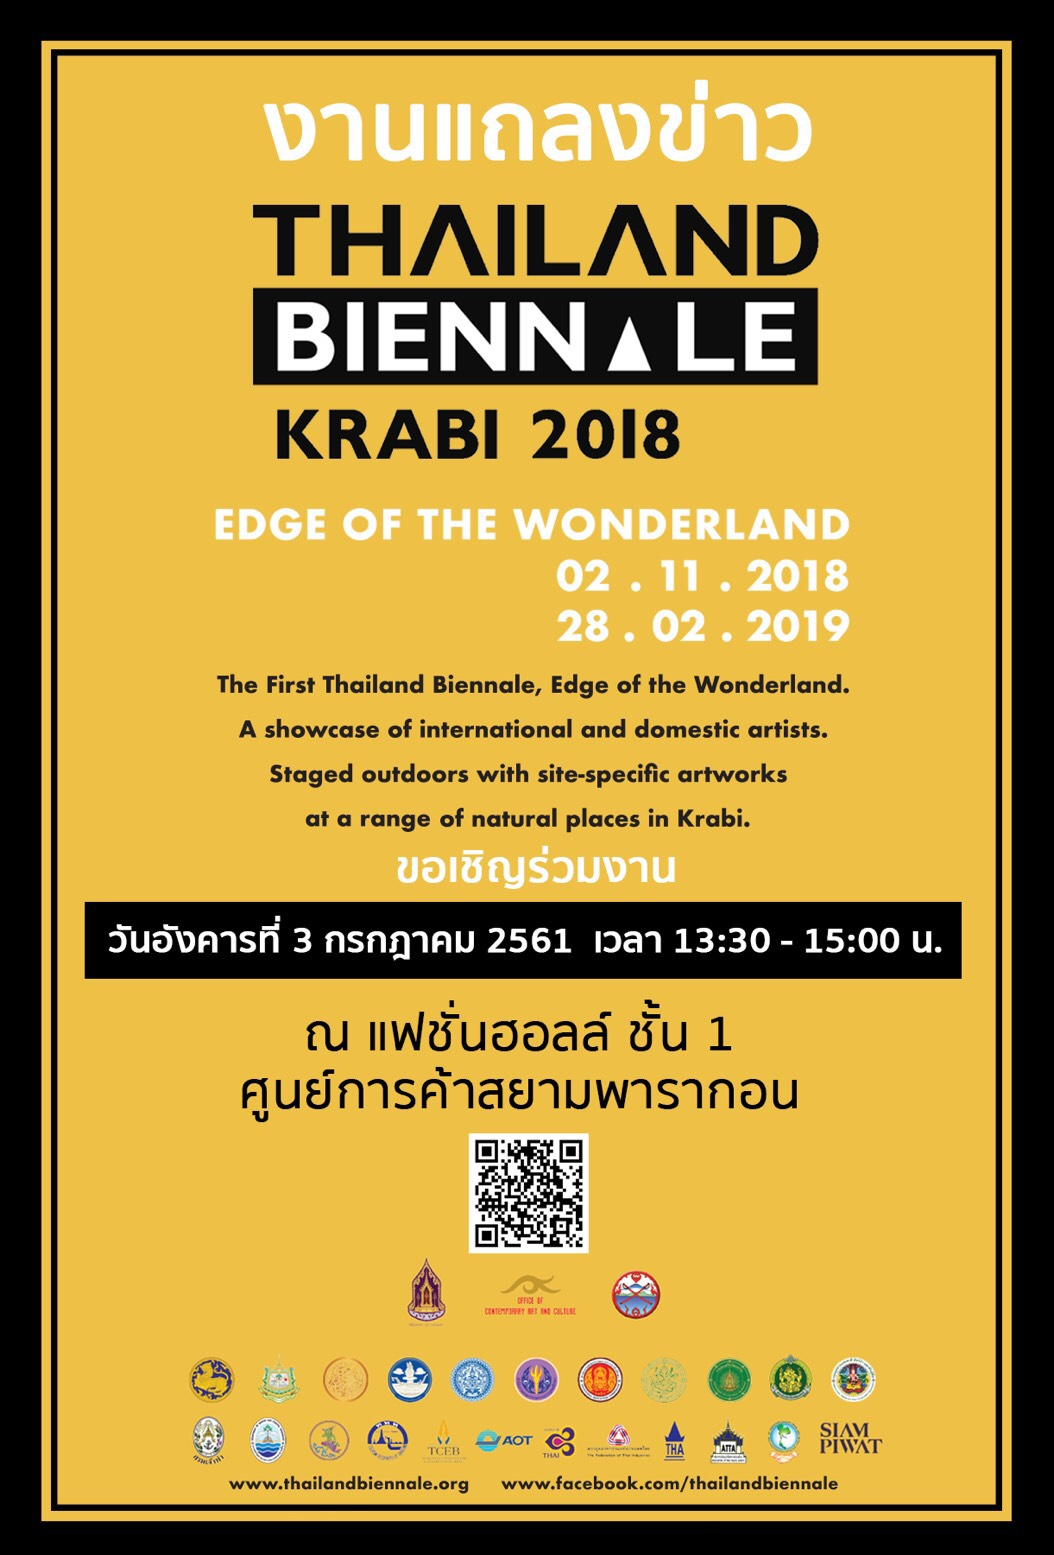 Taiwan artists selected for Thailand's inaugural biennale